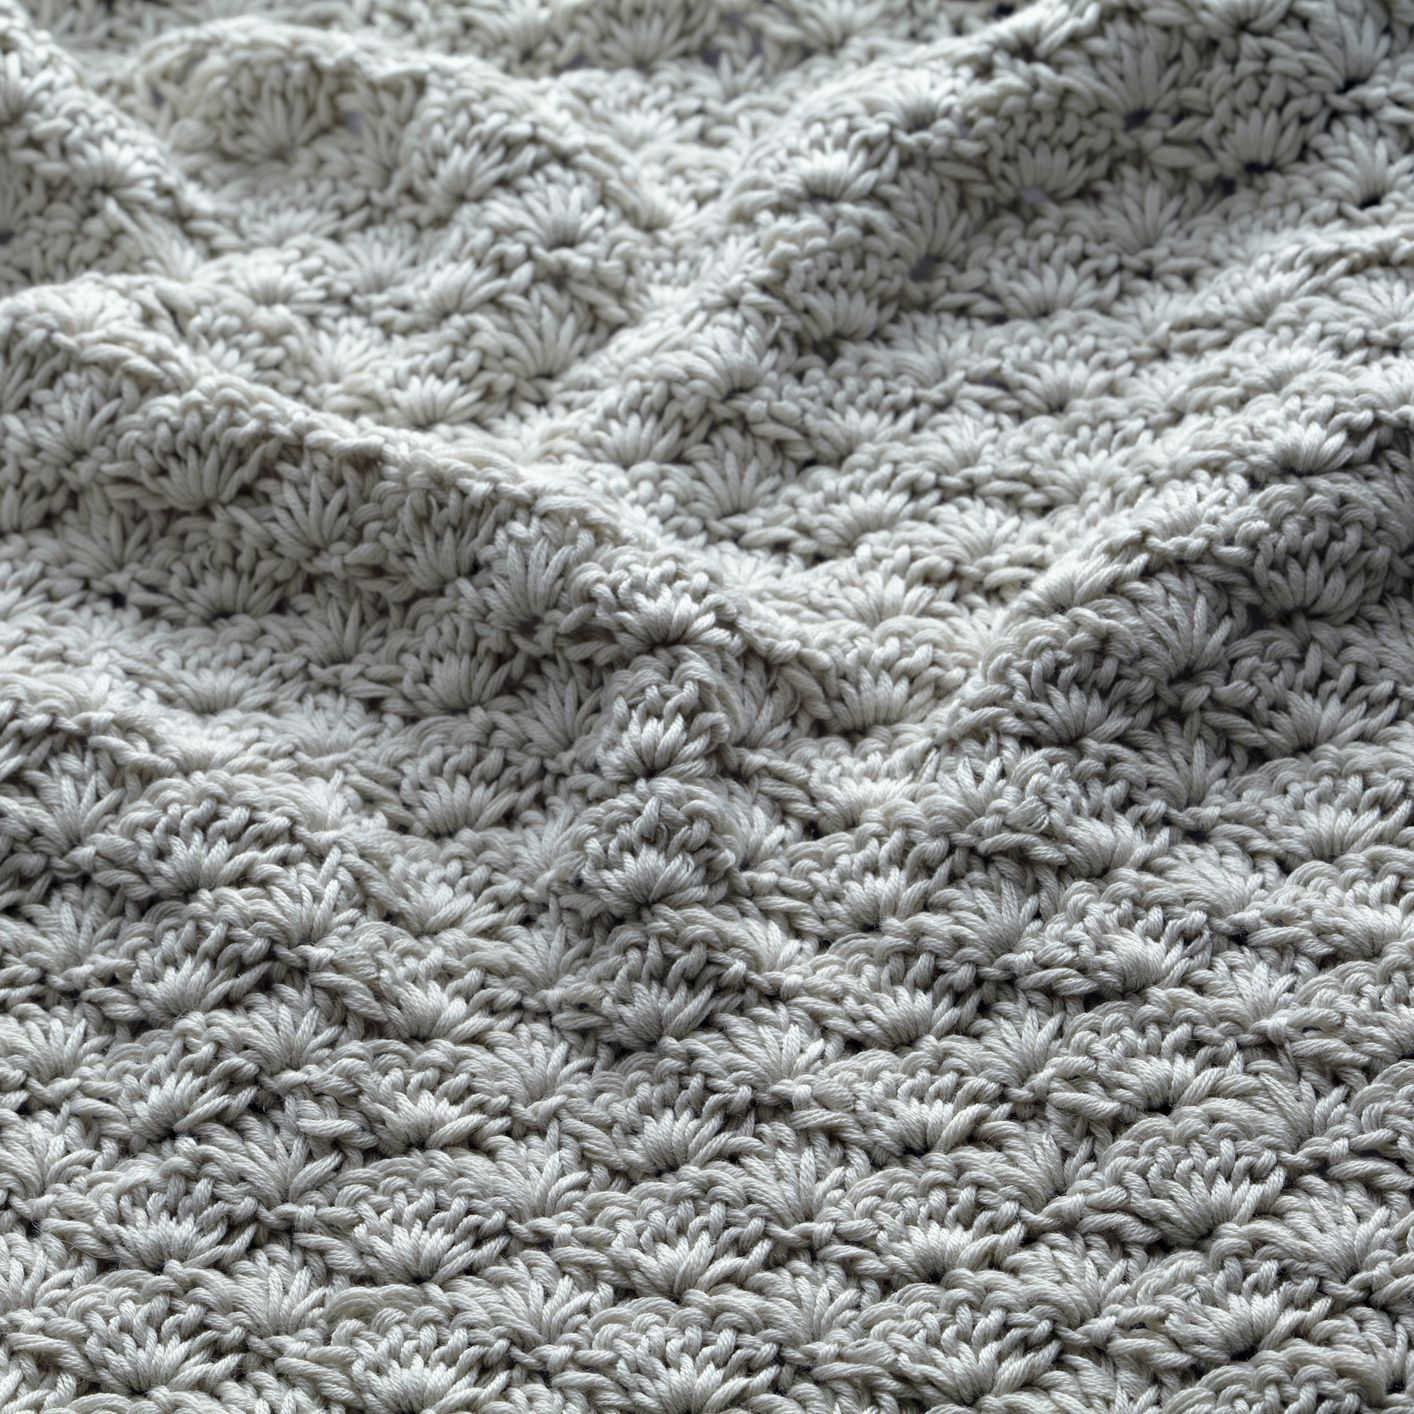 Traditional Shells Afghan crochet PATTERN INSTRUCTIONS